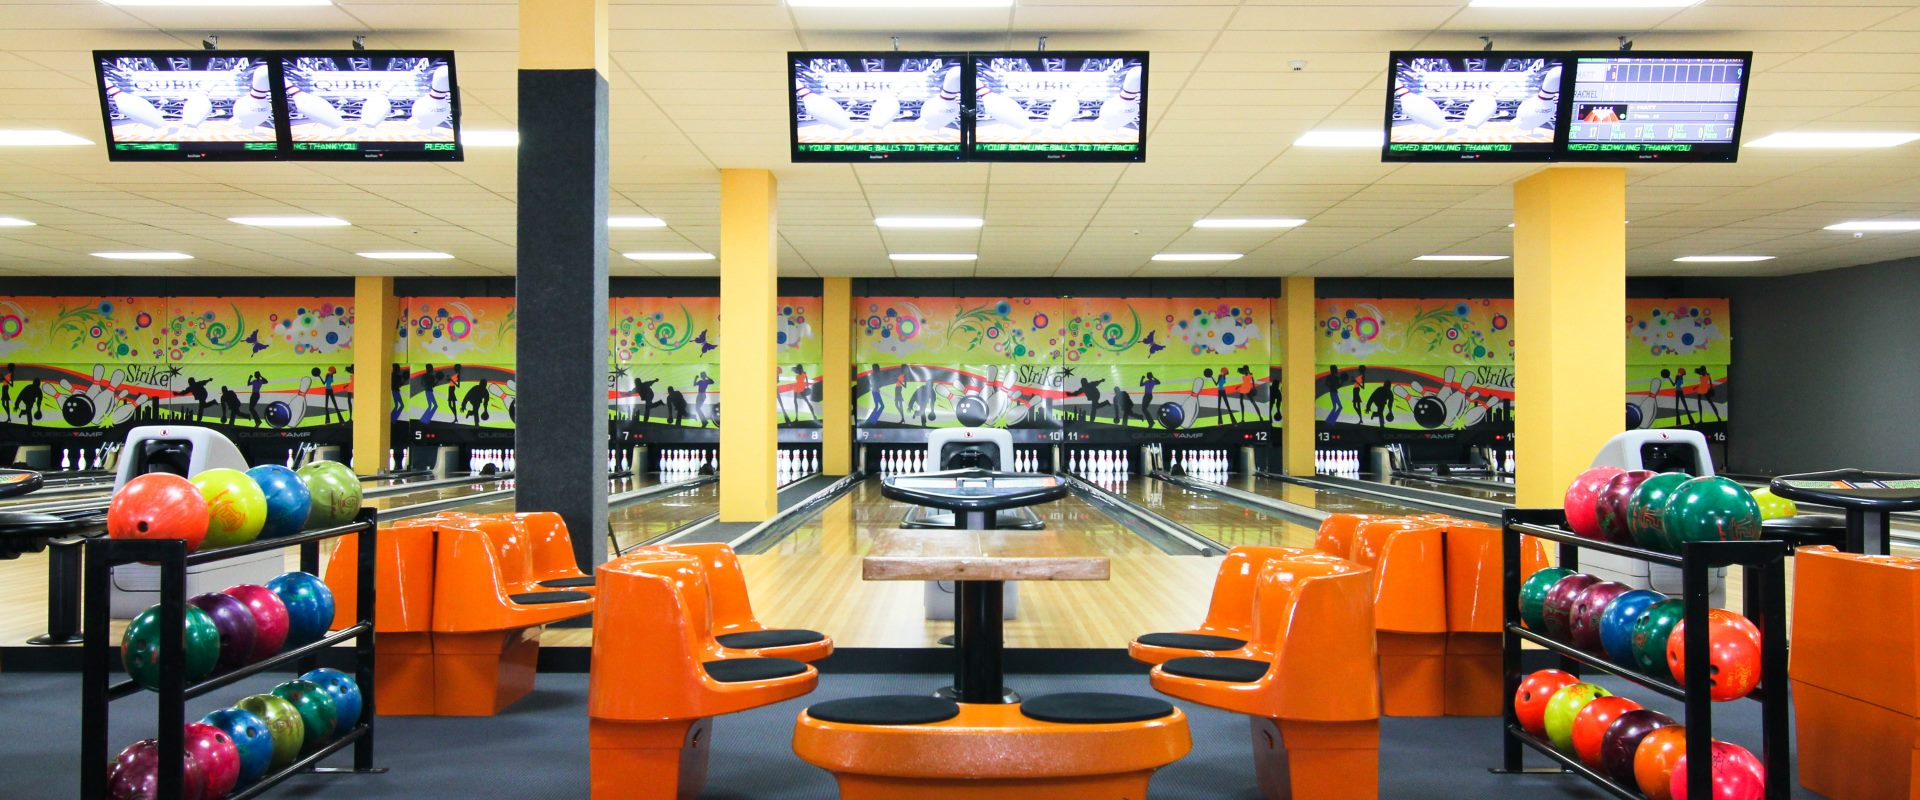 bowlarama new plymouth